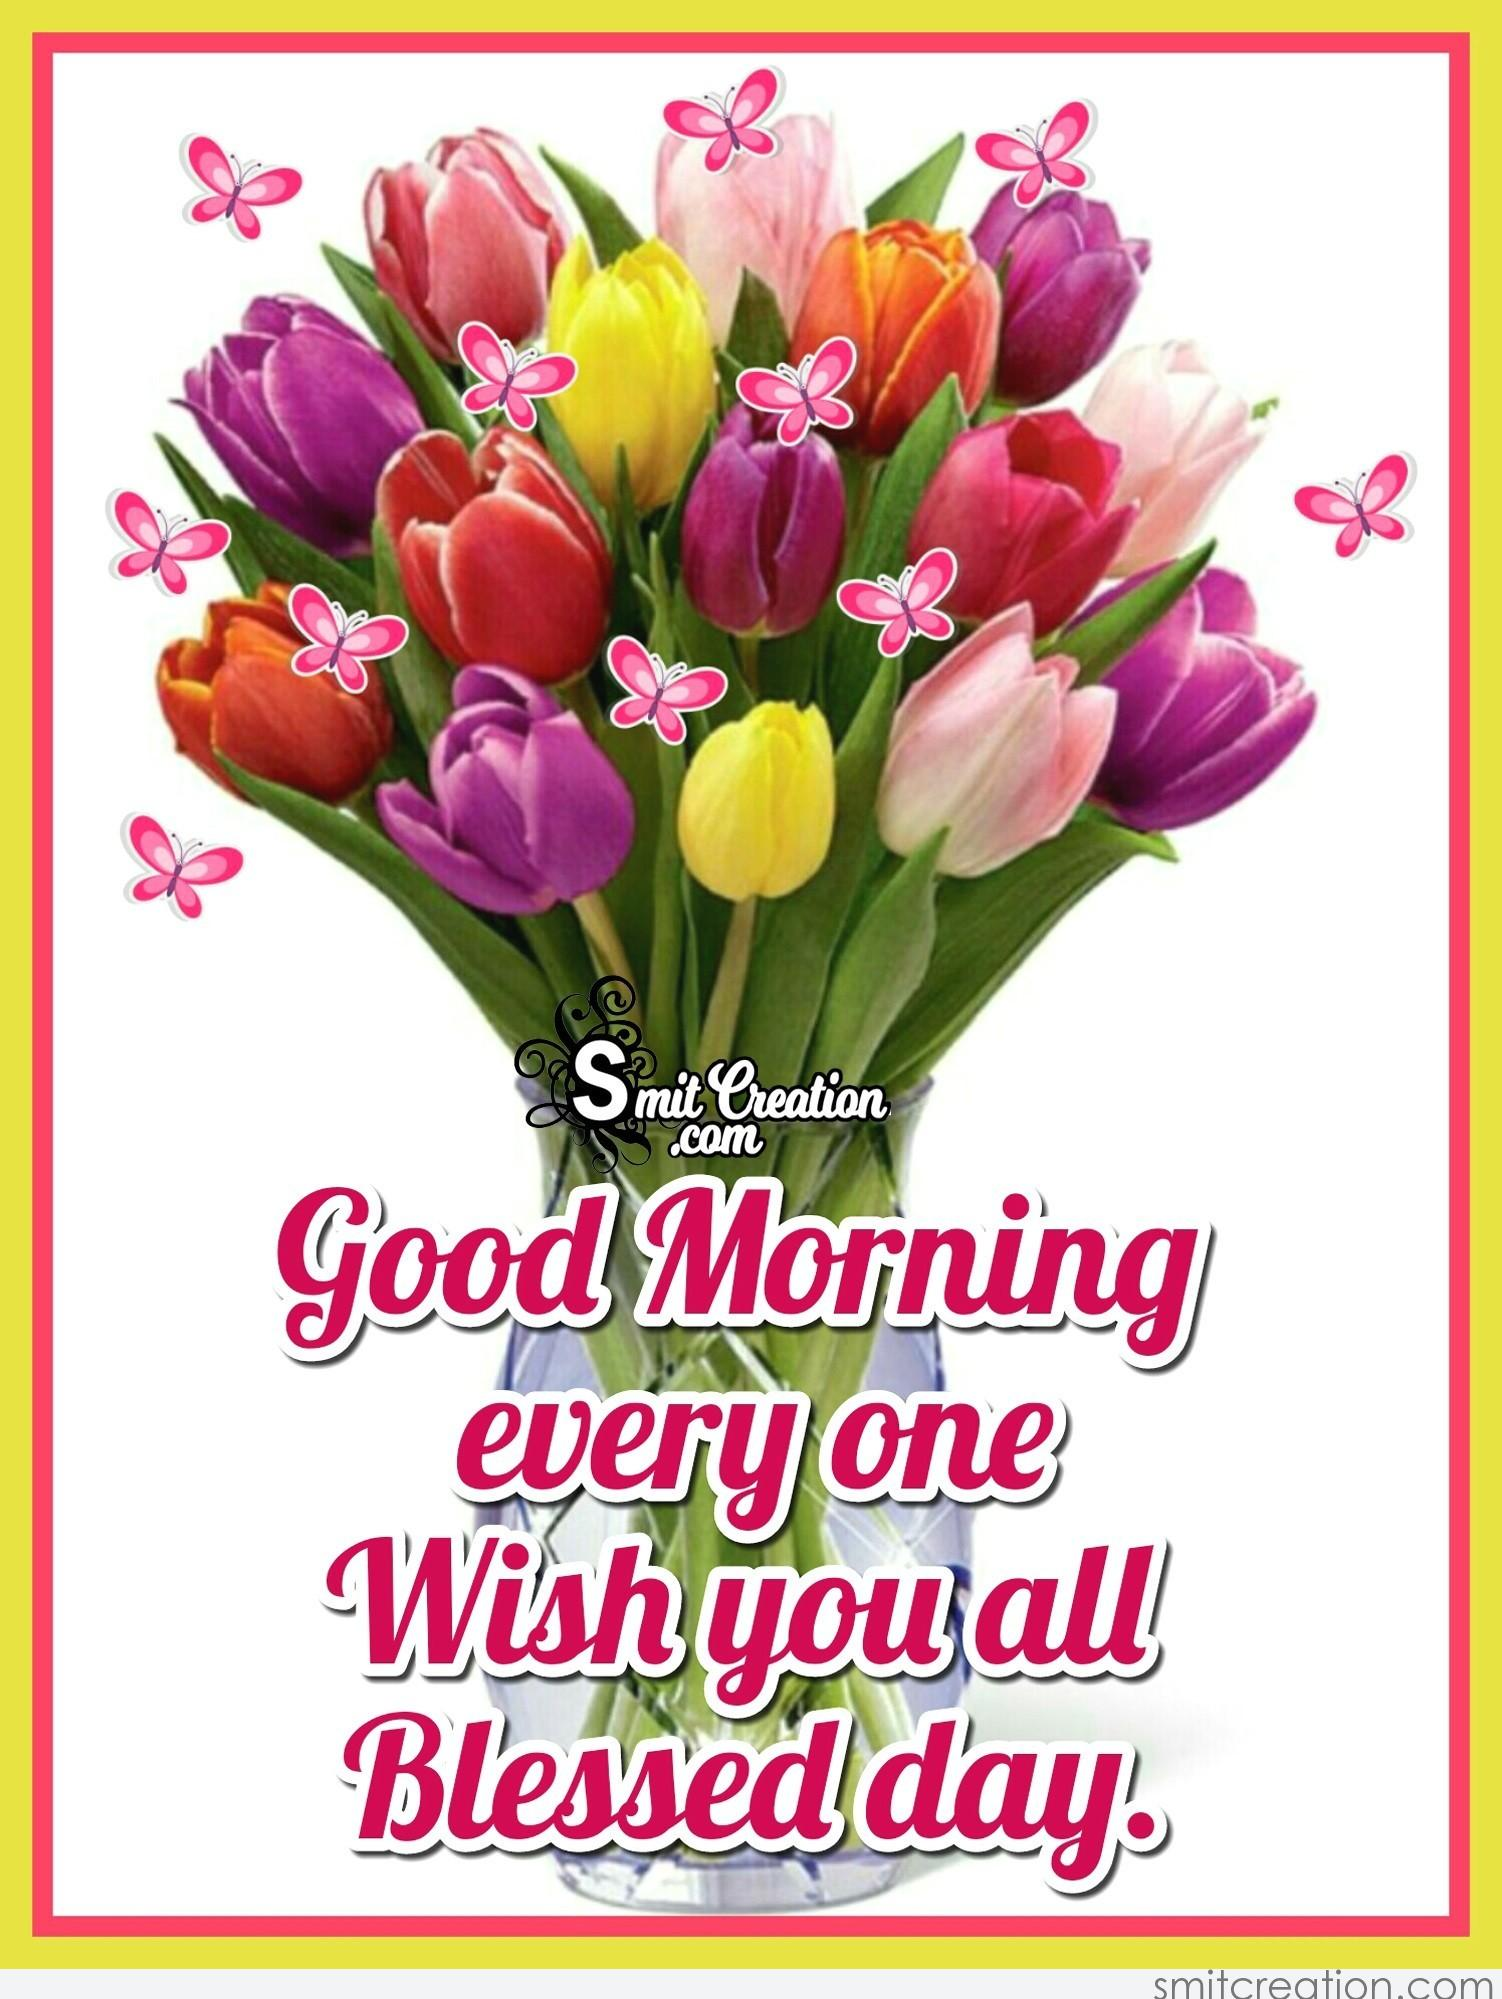 Good Morning Bouquet Pictures and Graphics - SmitCreation.com